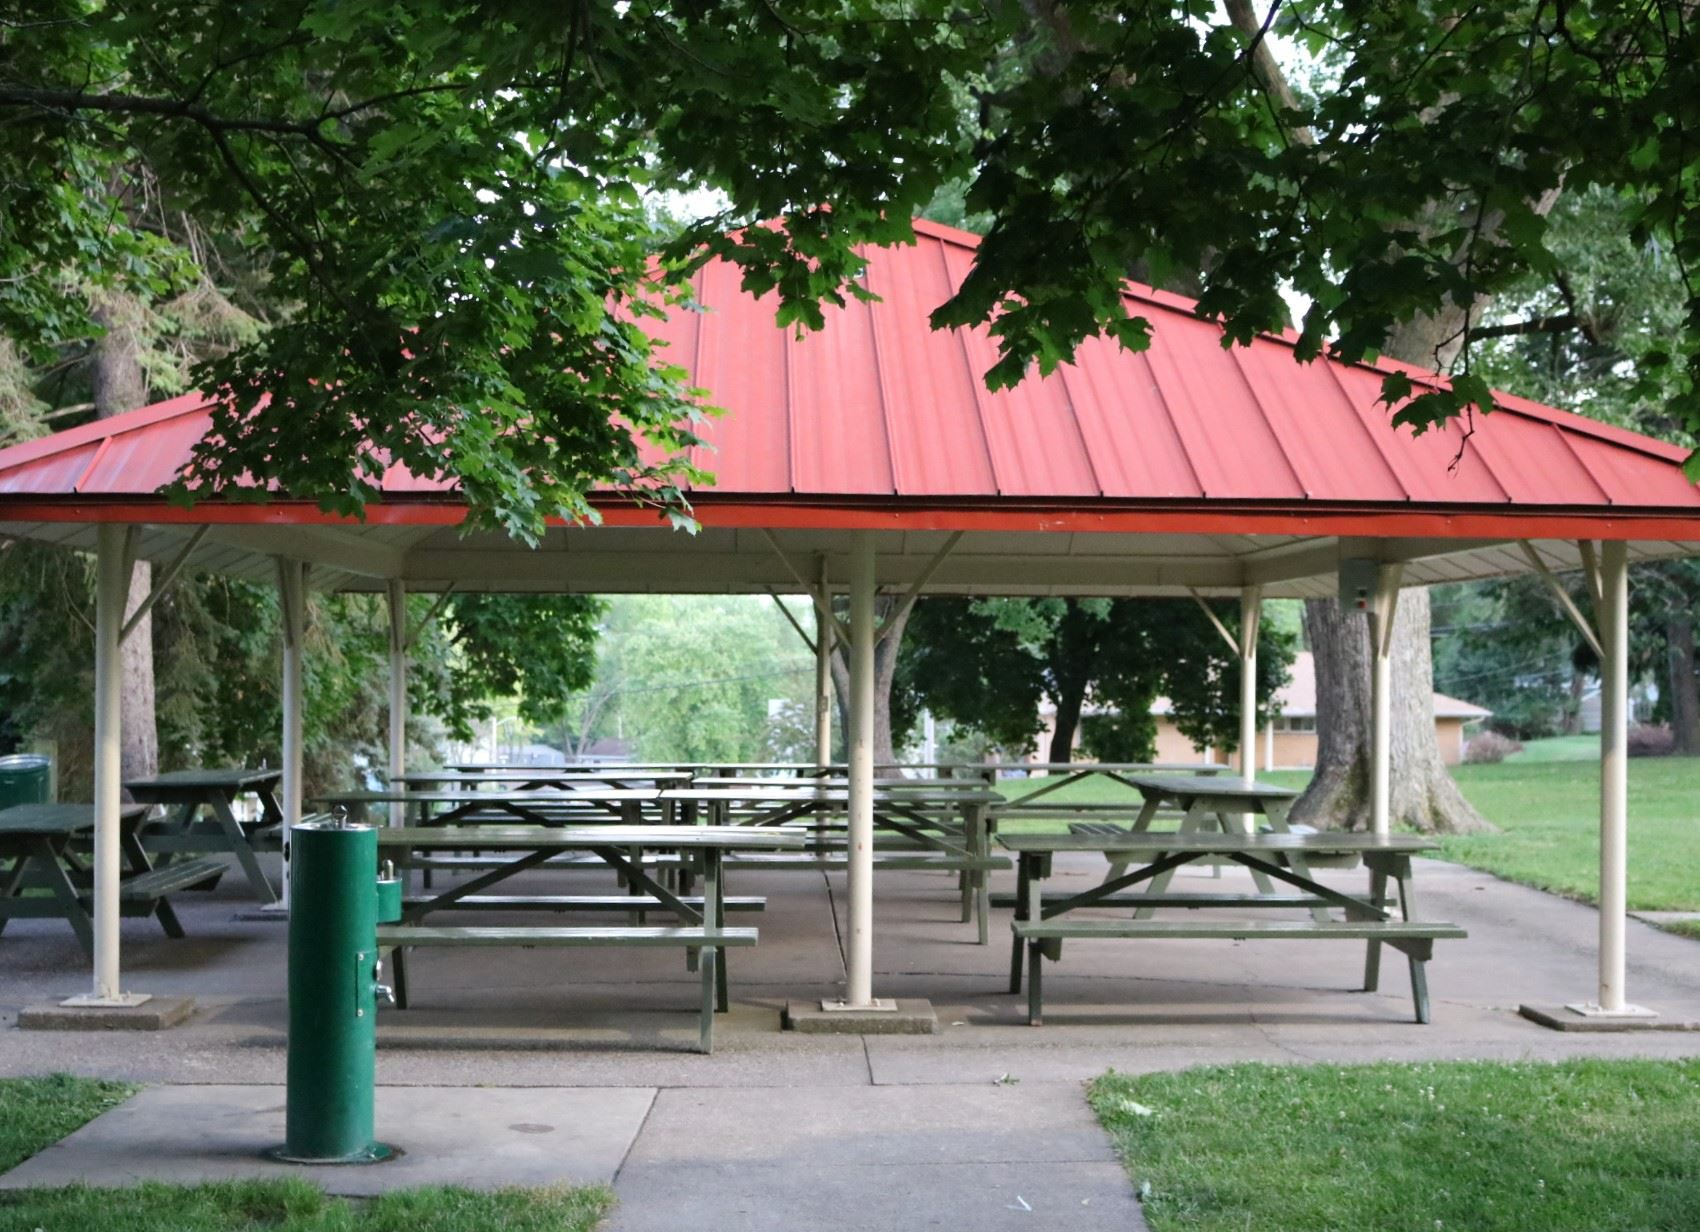 Open Air Pennsylvania seating: 70 people; price: $70.00. 15 amp electricity, water fountain, barbecu